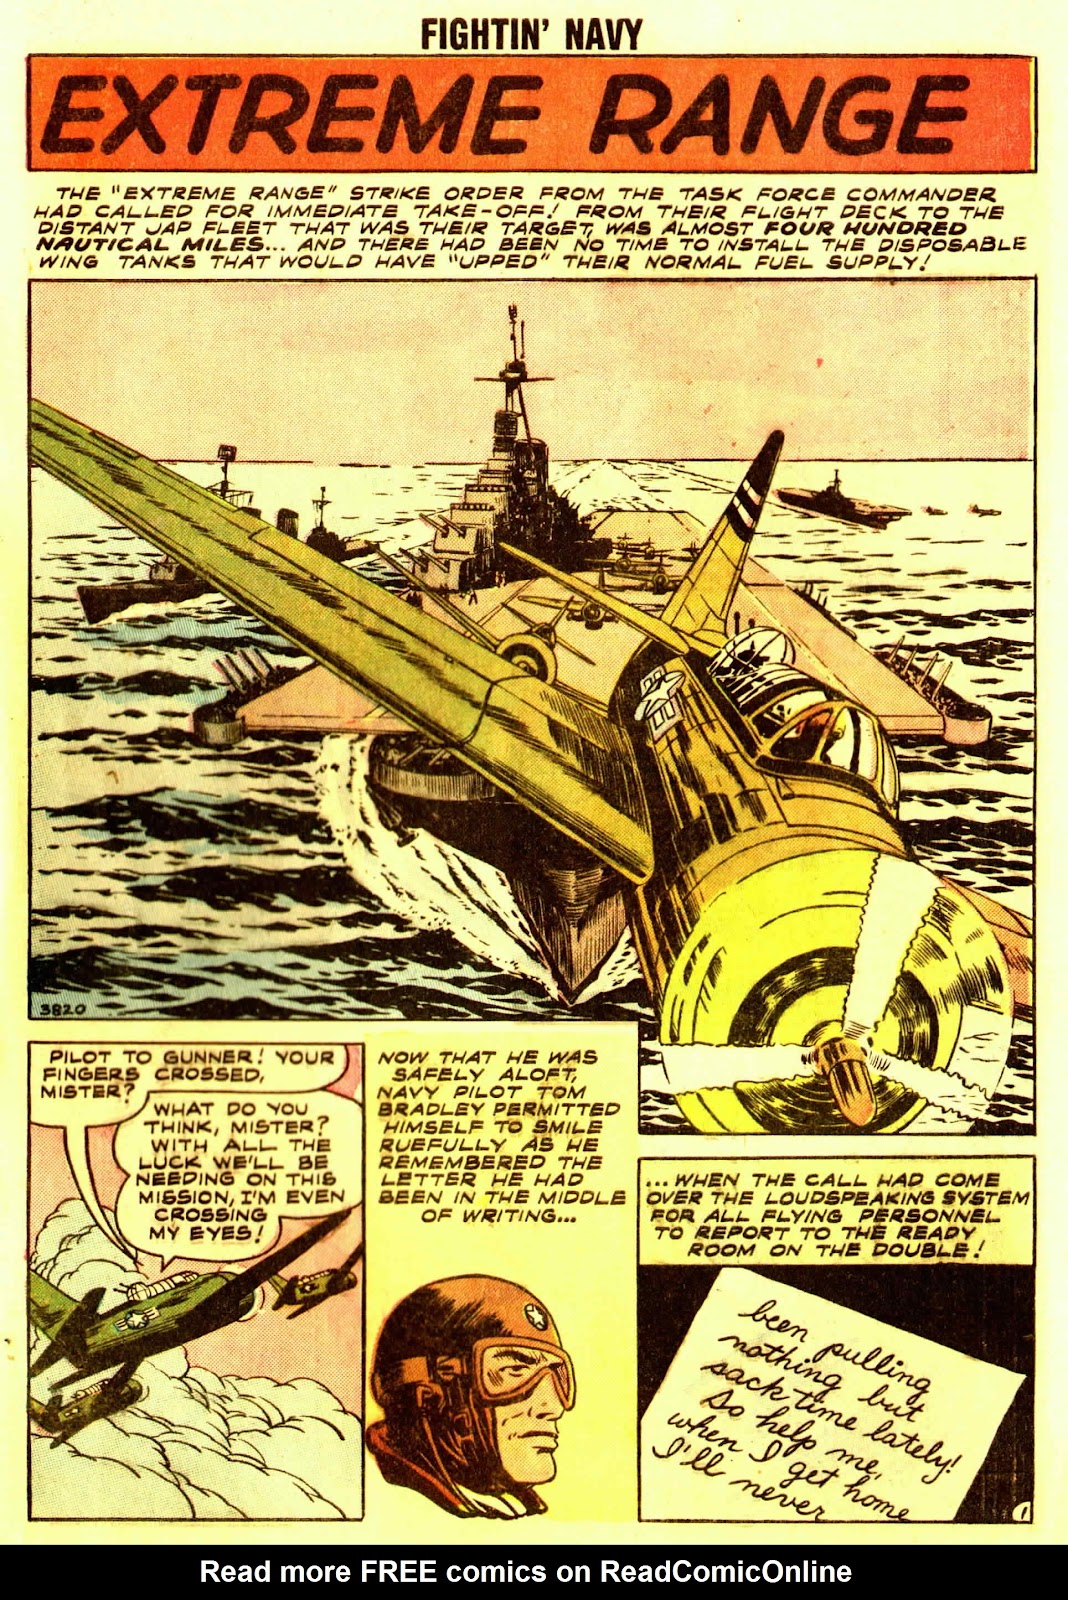 Read online Fightin' Navy comic -  Issue #83 - 93